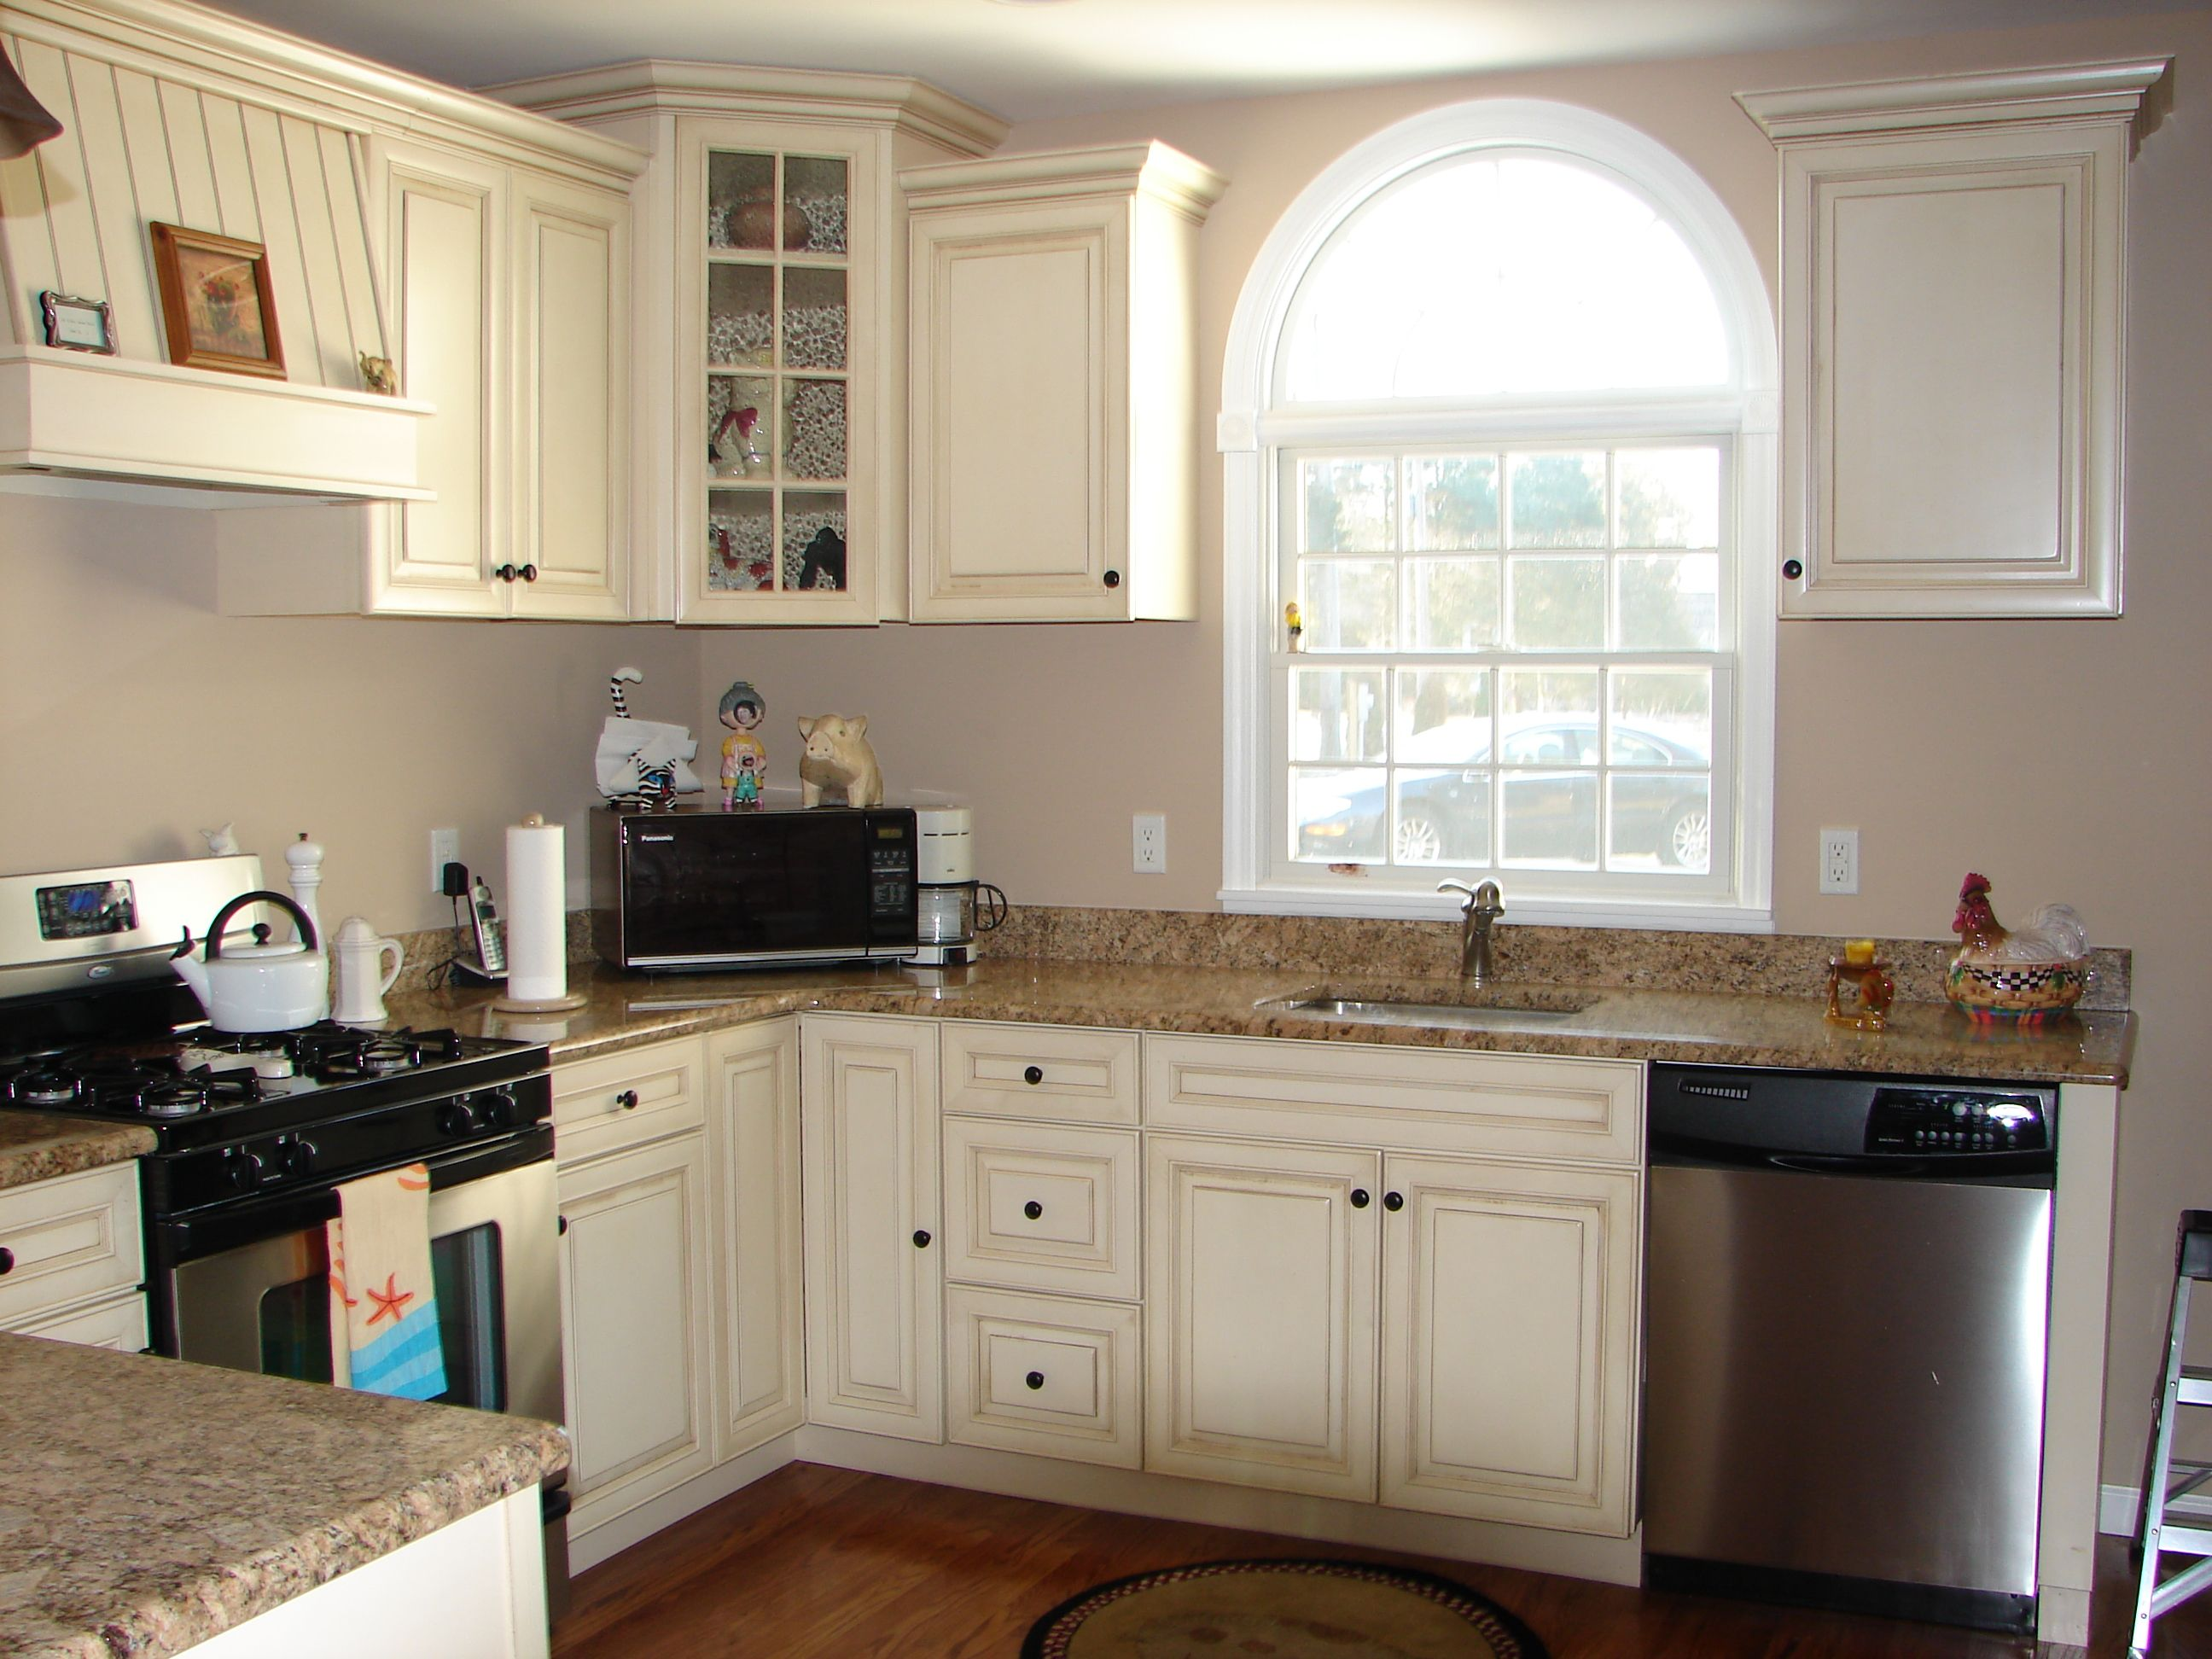 Gray walls with distressed cream cabinets, and pretty ...